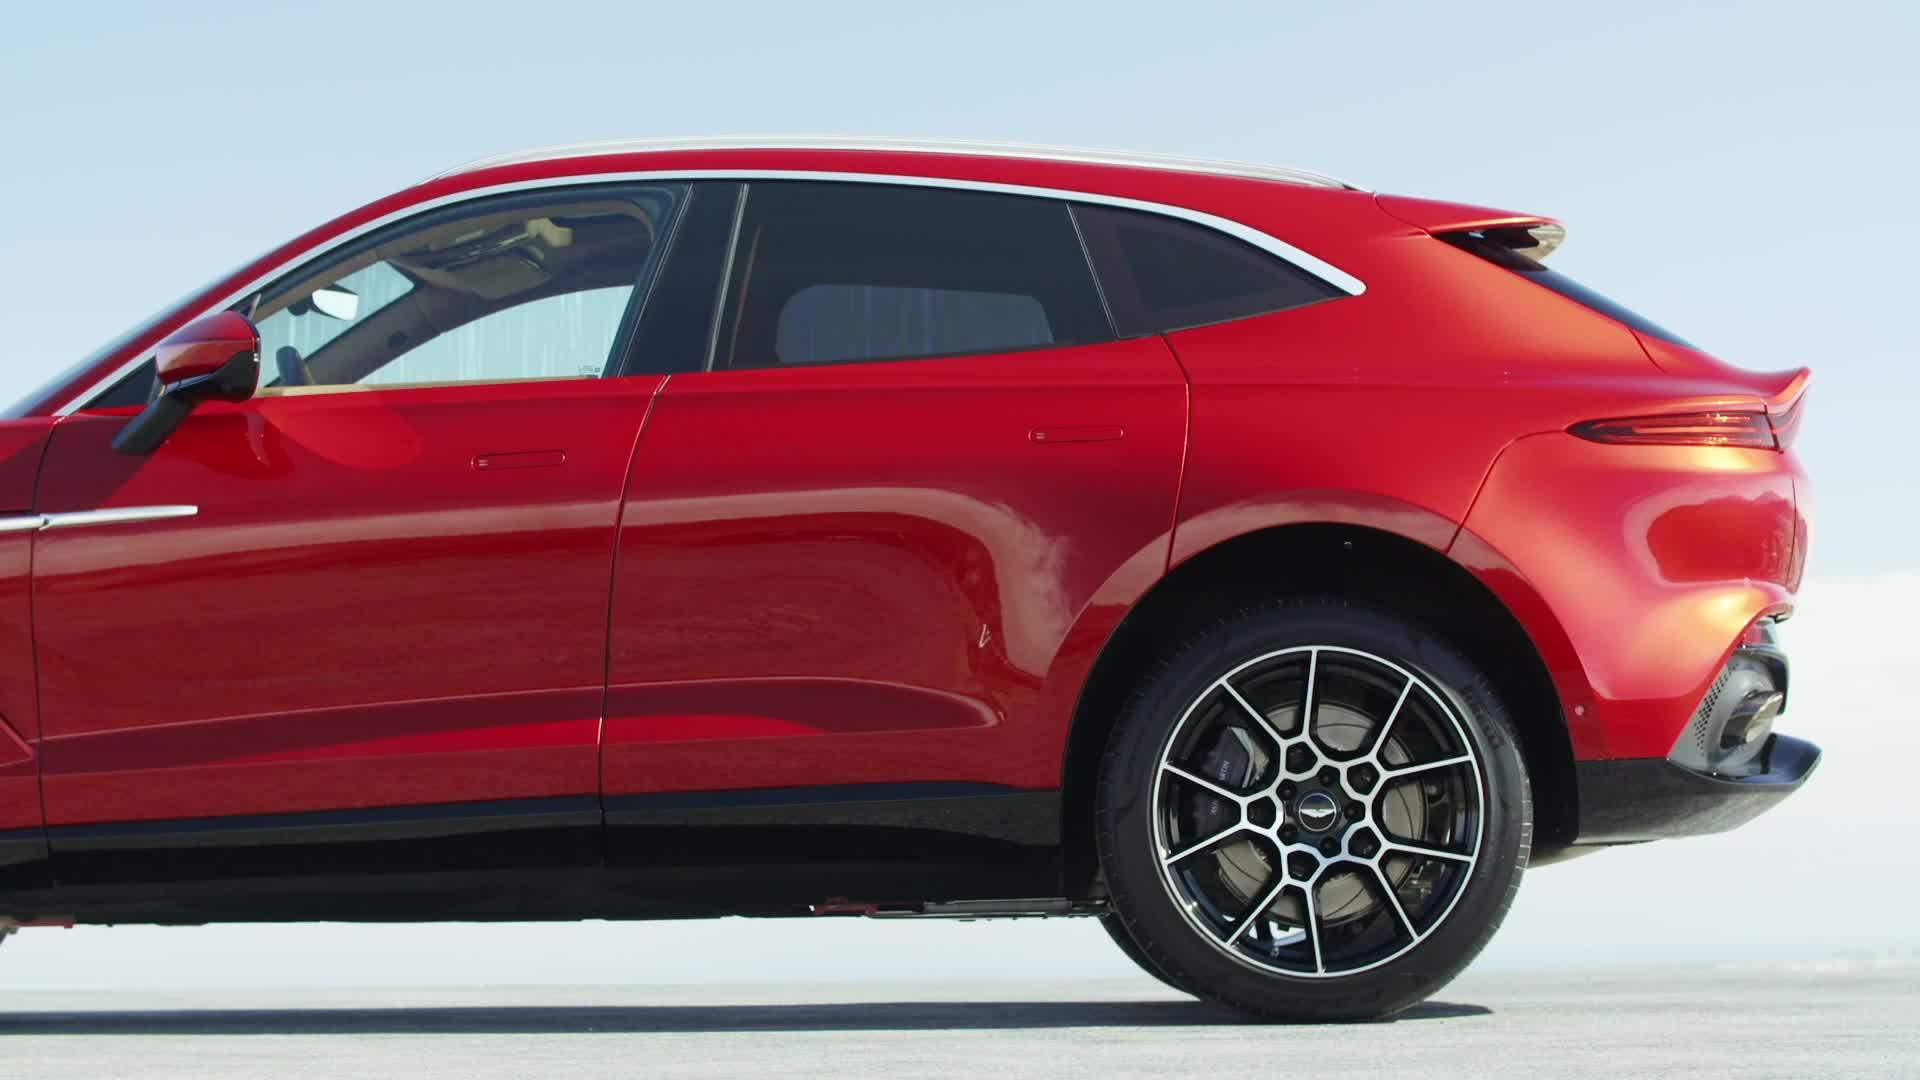 Aston Martin Dbx Preview In Hyper Red One News Page Video